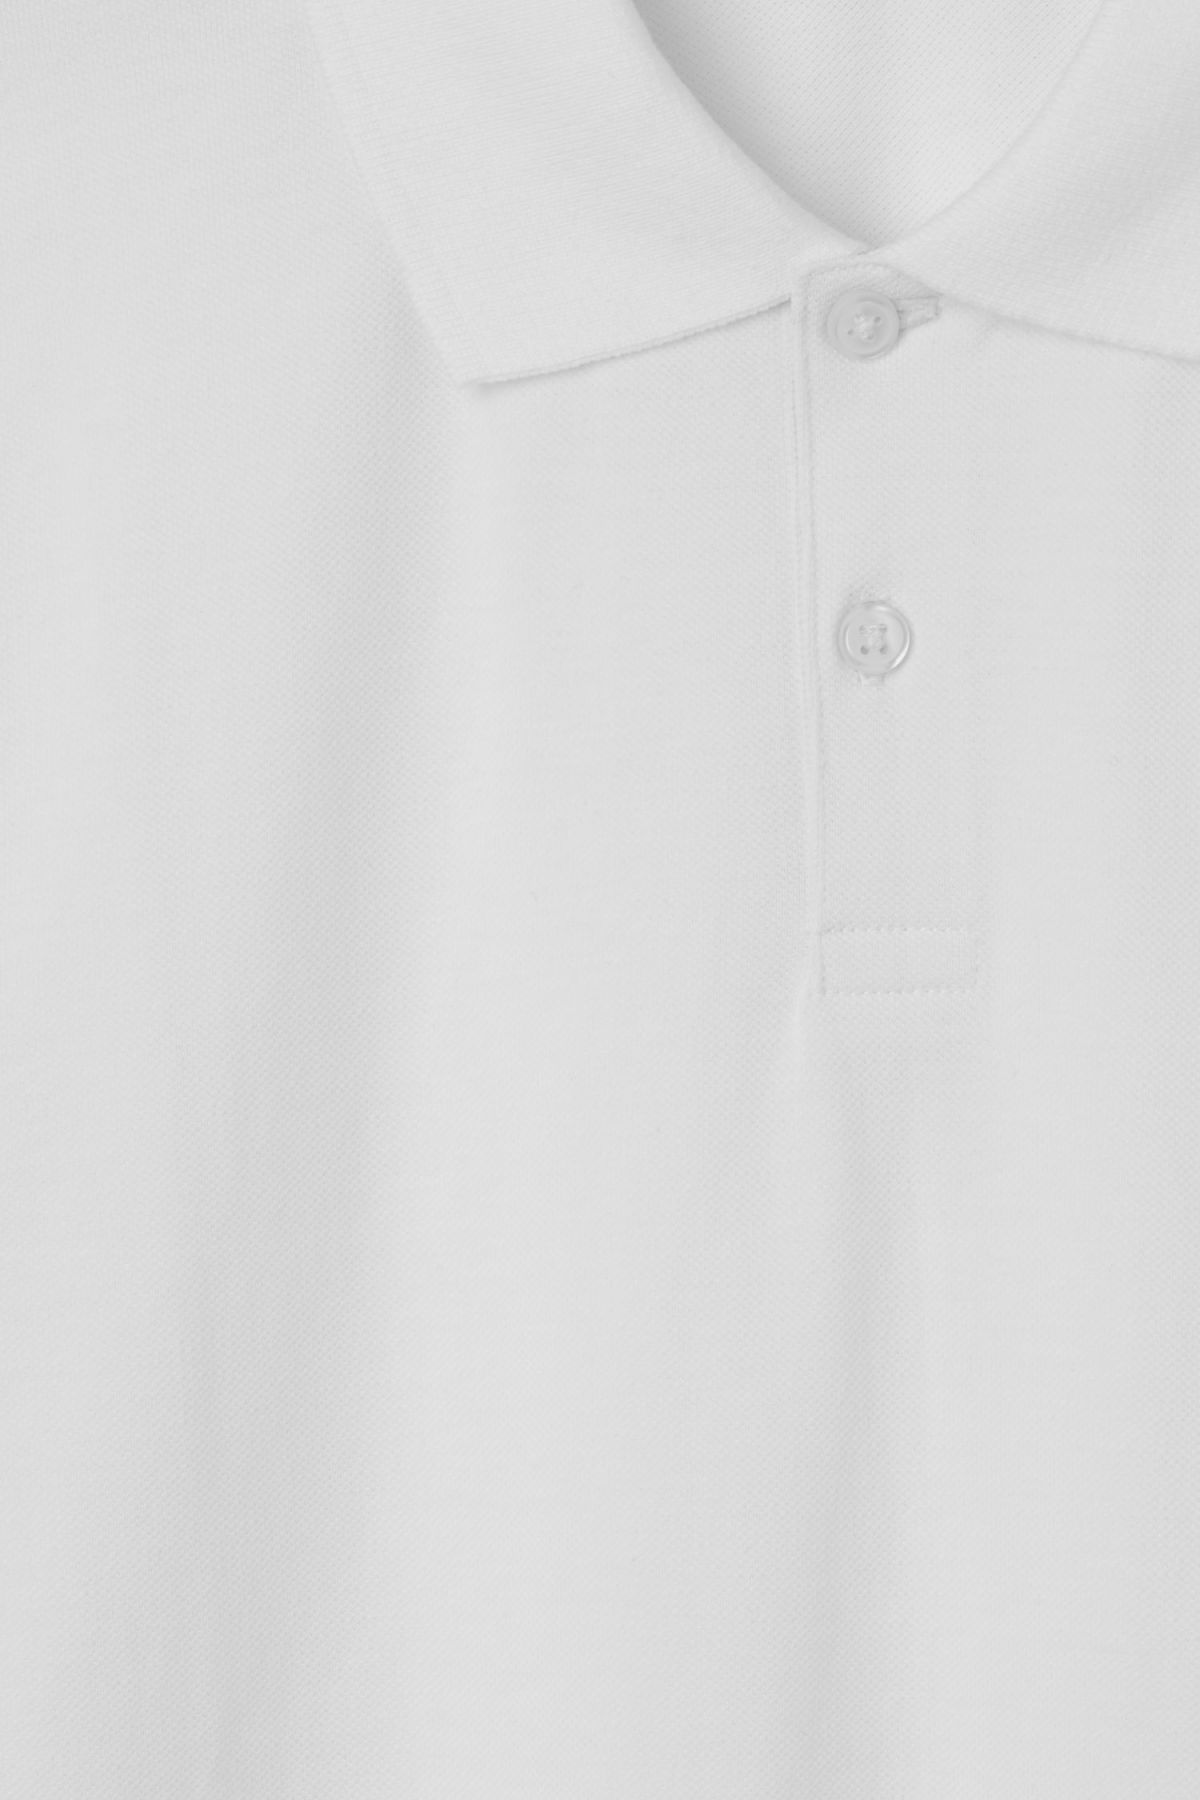 Detailed image of Weekday jam polo shirt in white